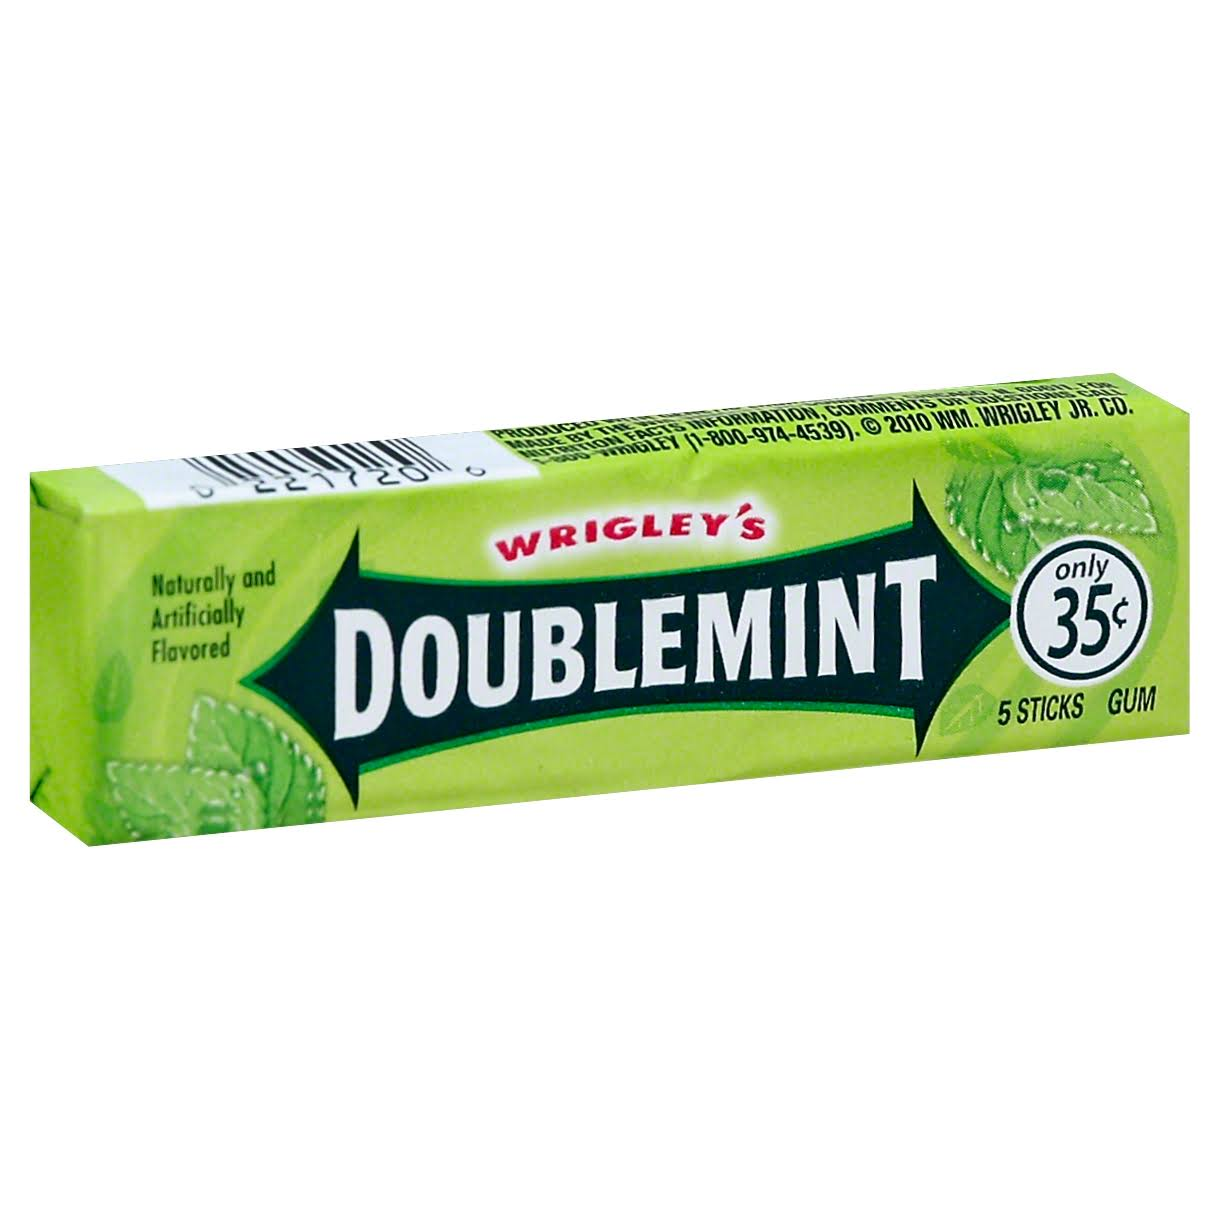 Wrigley's Doublemint Chewing Gum - 5 Sticks